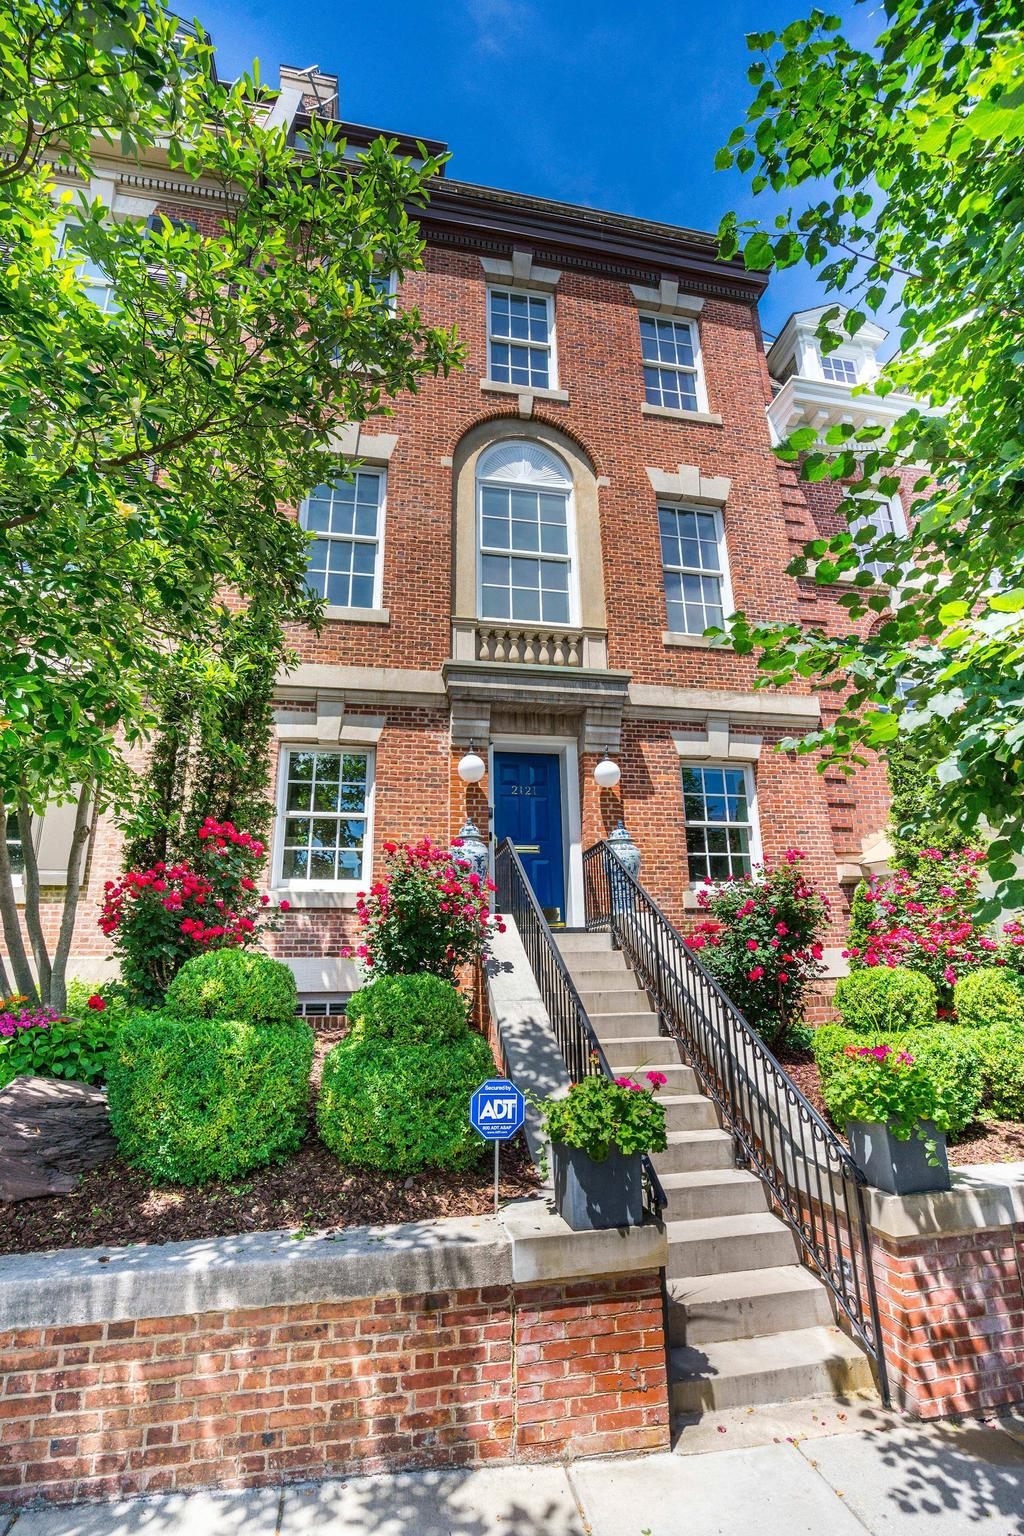 Townhouse for Sale at 2121 S St NW Washington, District Of Columbia 20008 United States